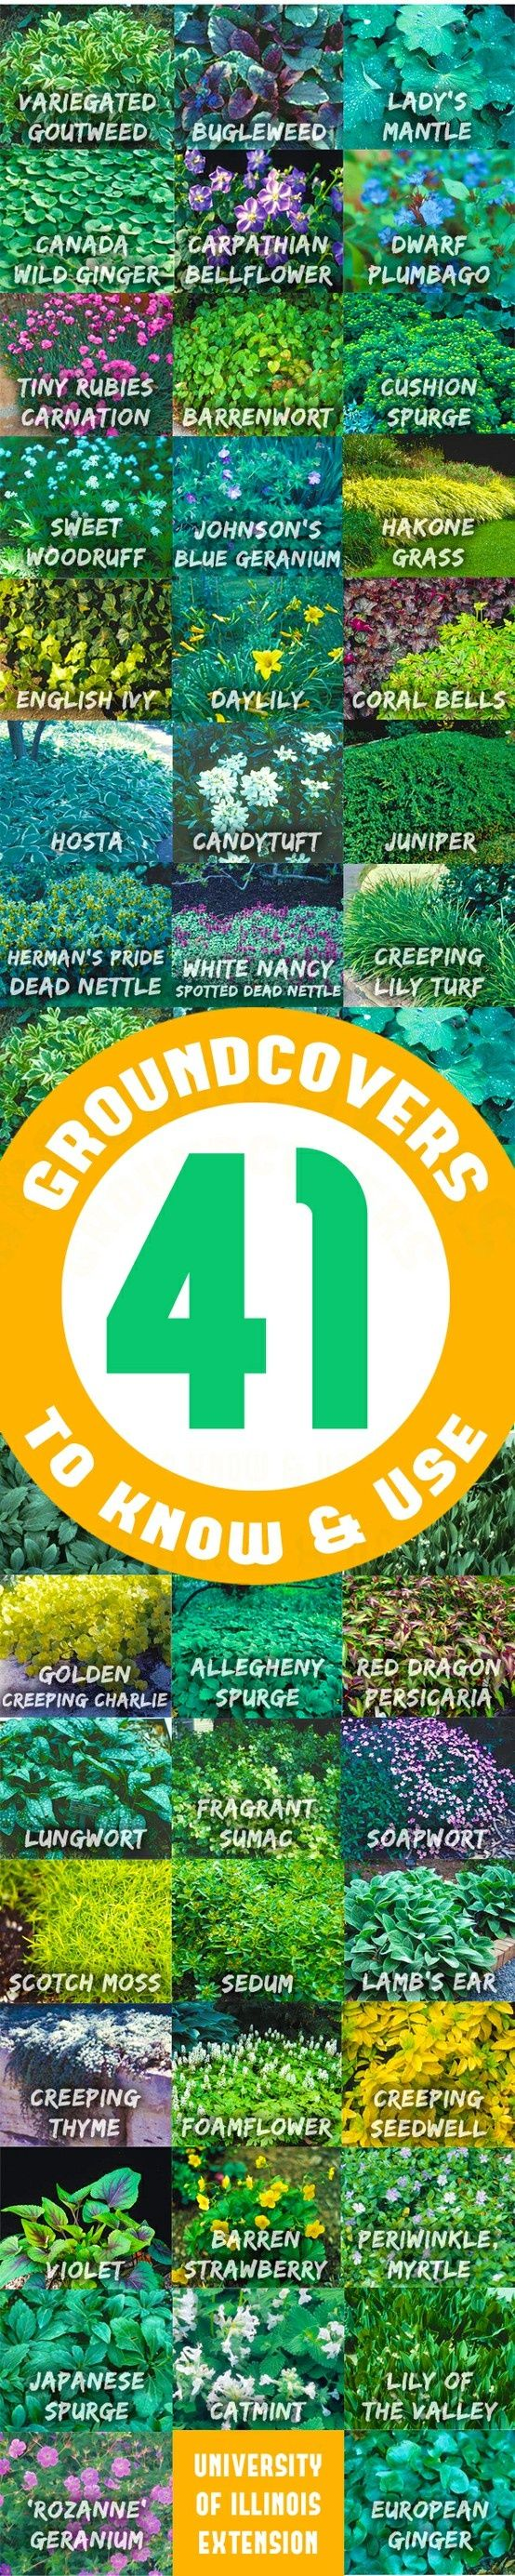 41 Groundcovers to Know  Use-For the driveway  hill to the house